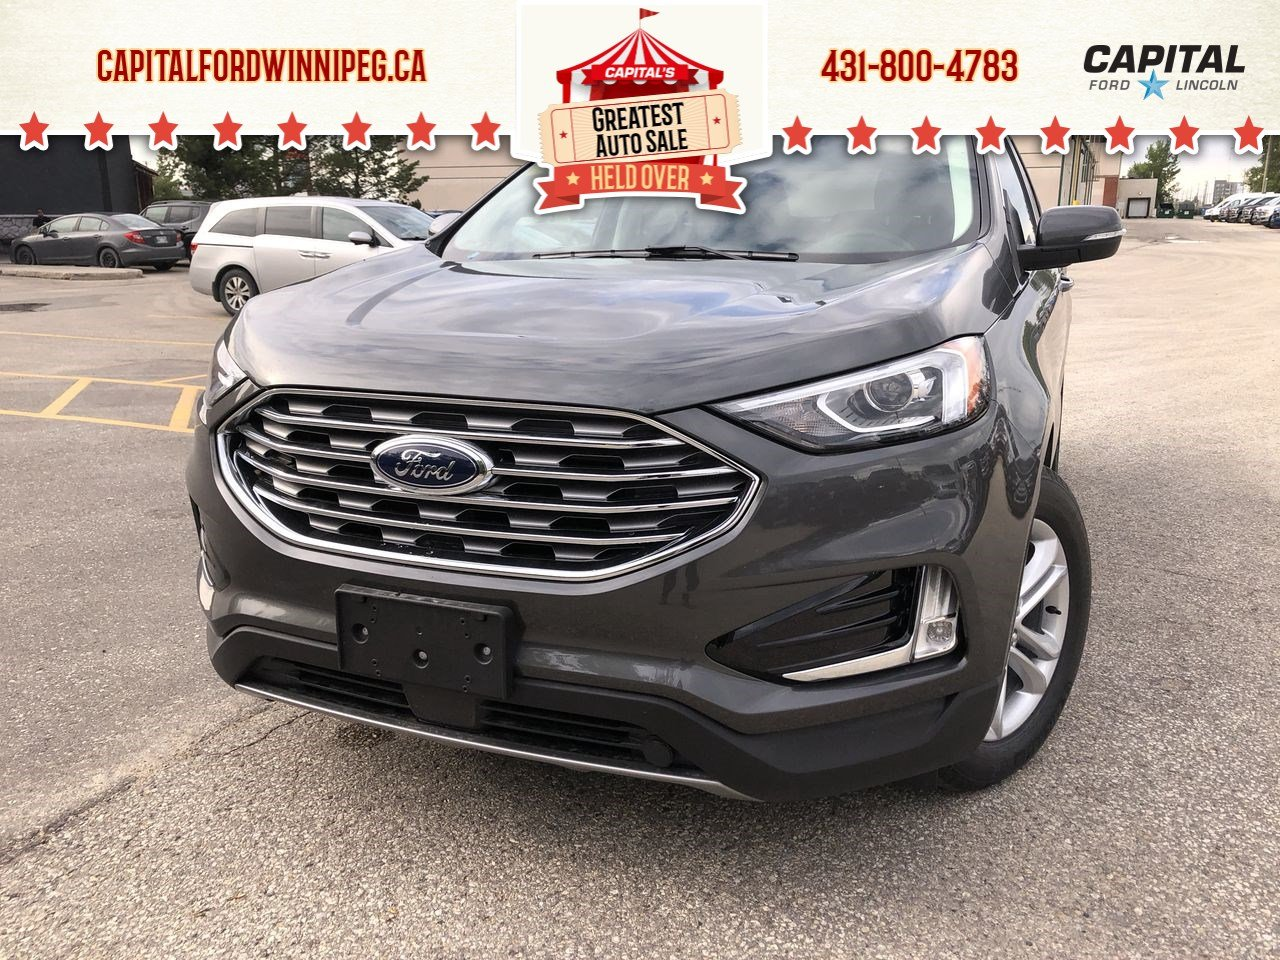 New 2019 Ford Edge SEL*AWD*Navigation*Wireless Charging*Heated Seats